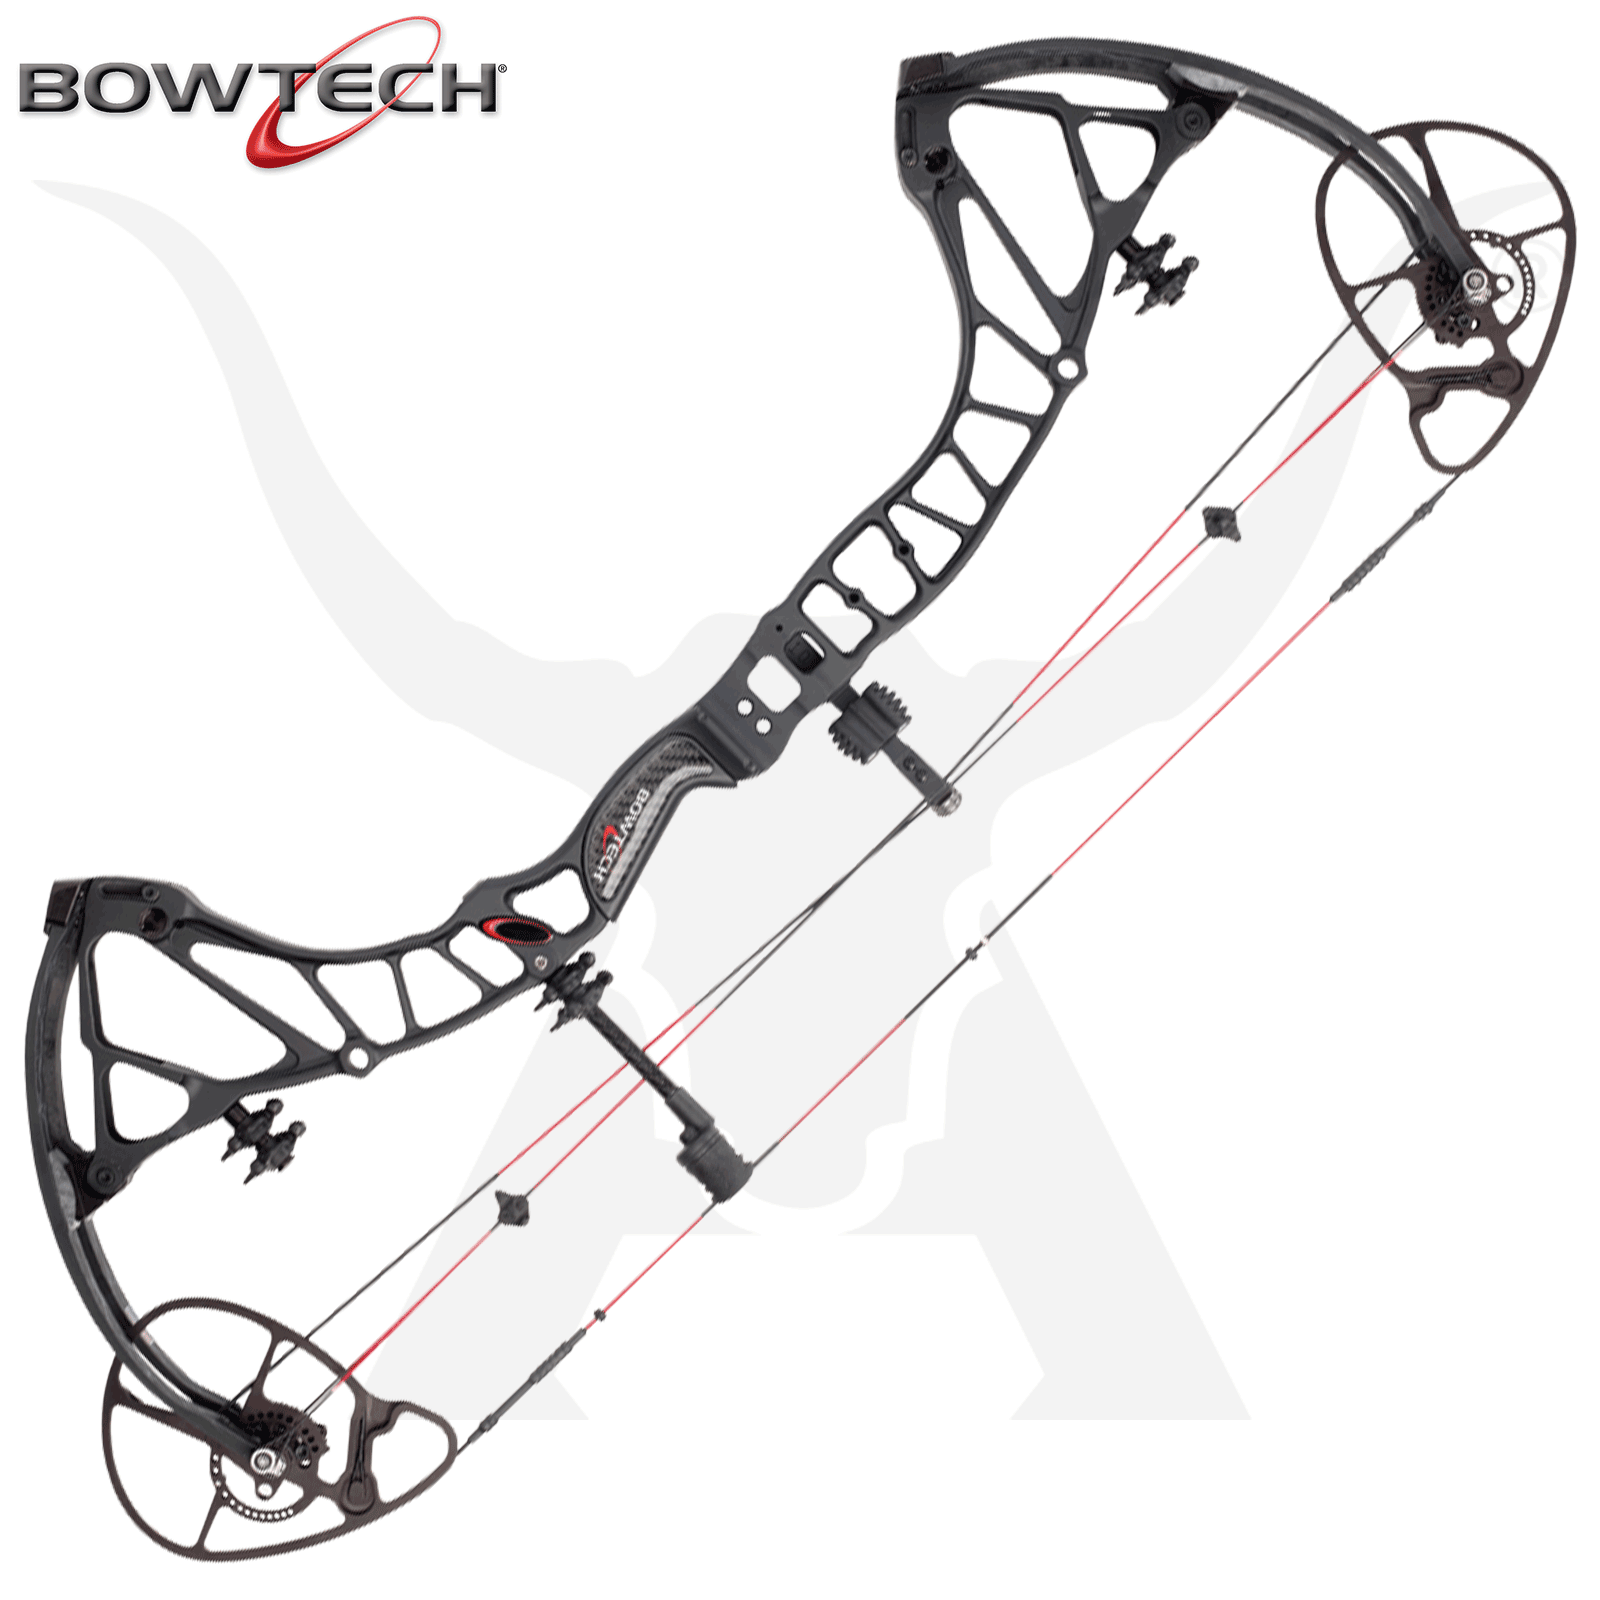 Bowtech Rpm 360 Compound Bow Model From Apex Hunting